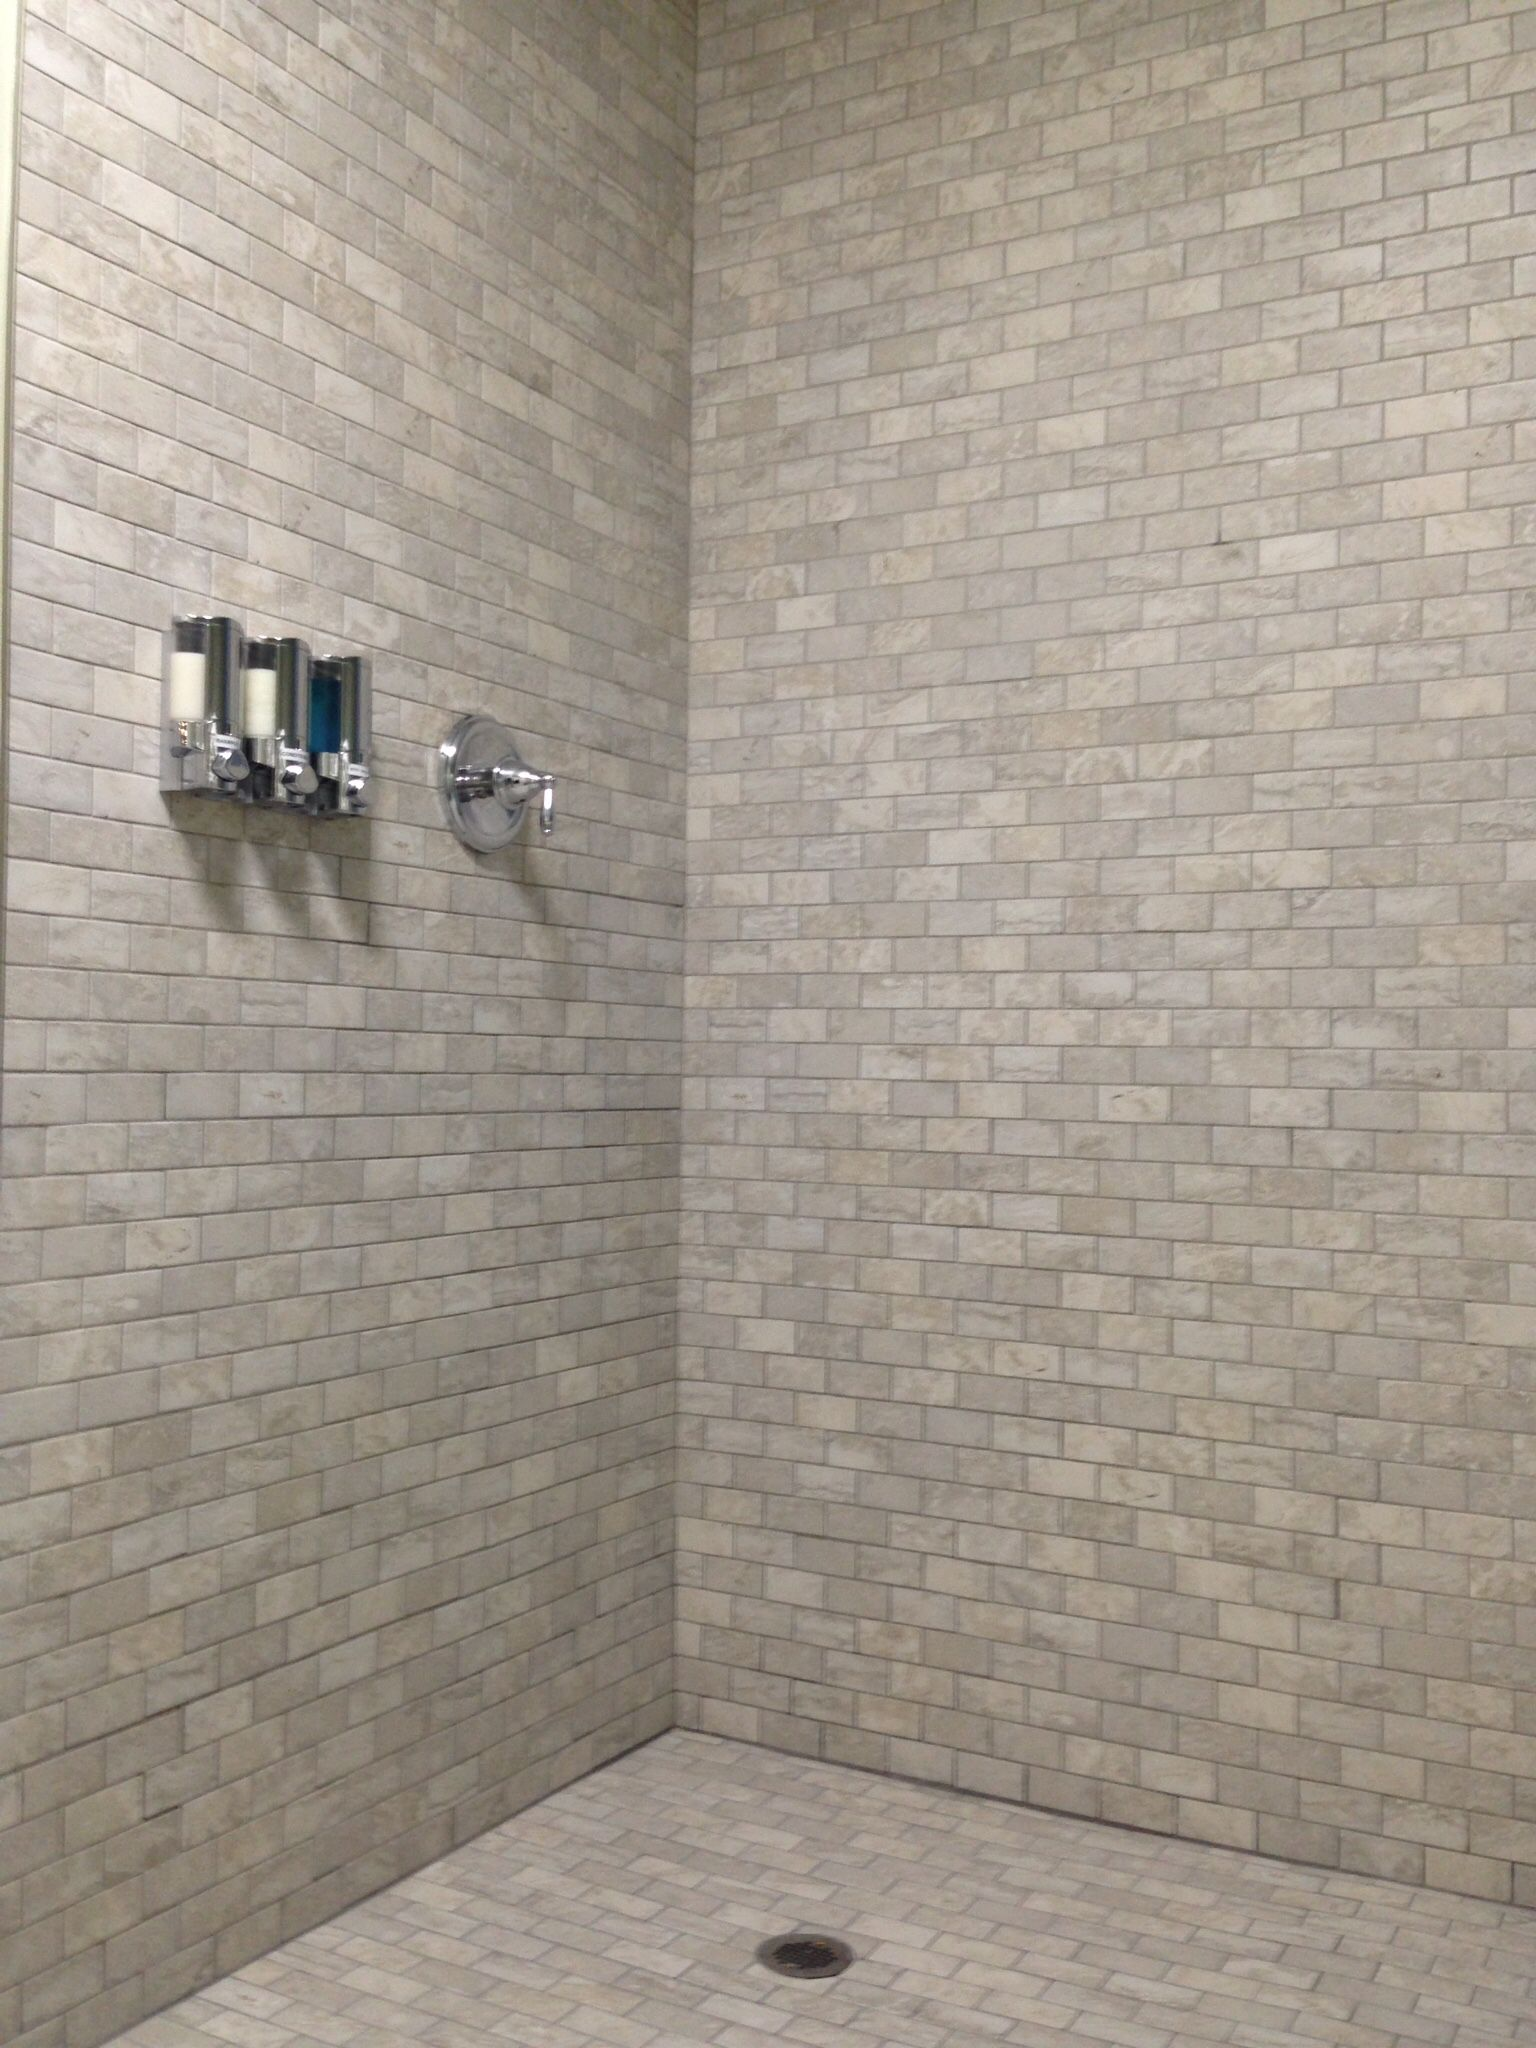 Daltile Exquisite EQ11 Chantilly 2x4 mosaic | Daltile ...